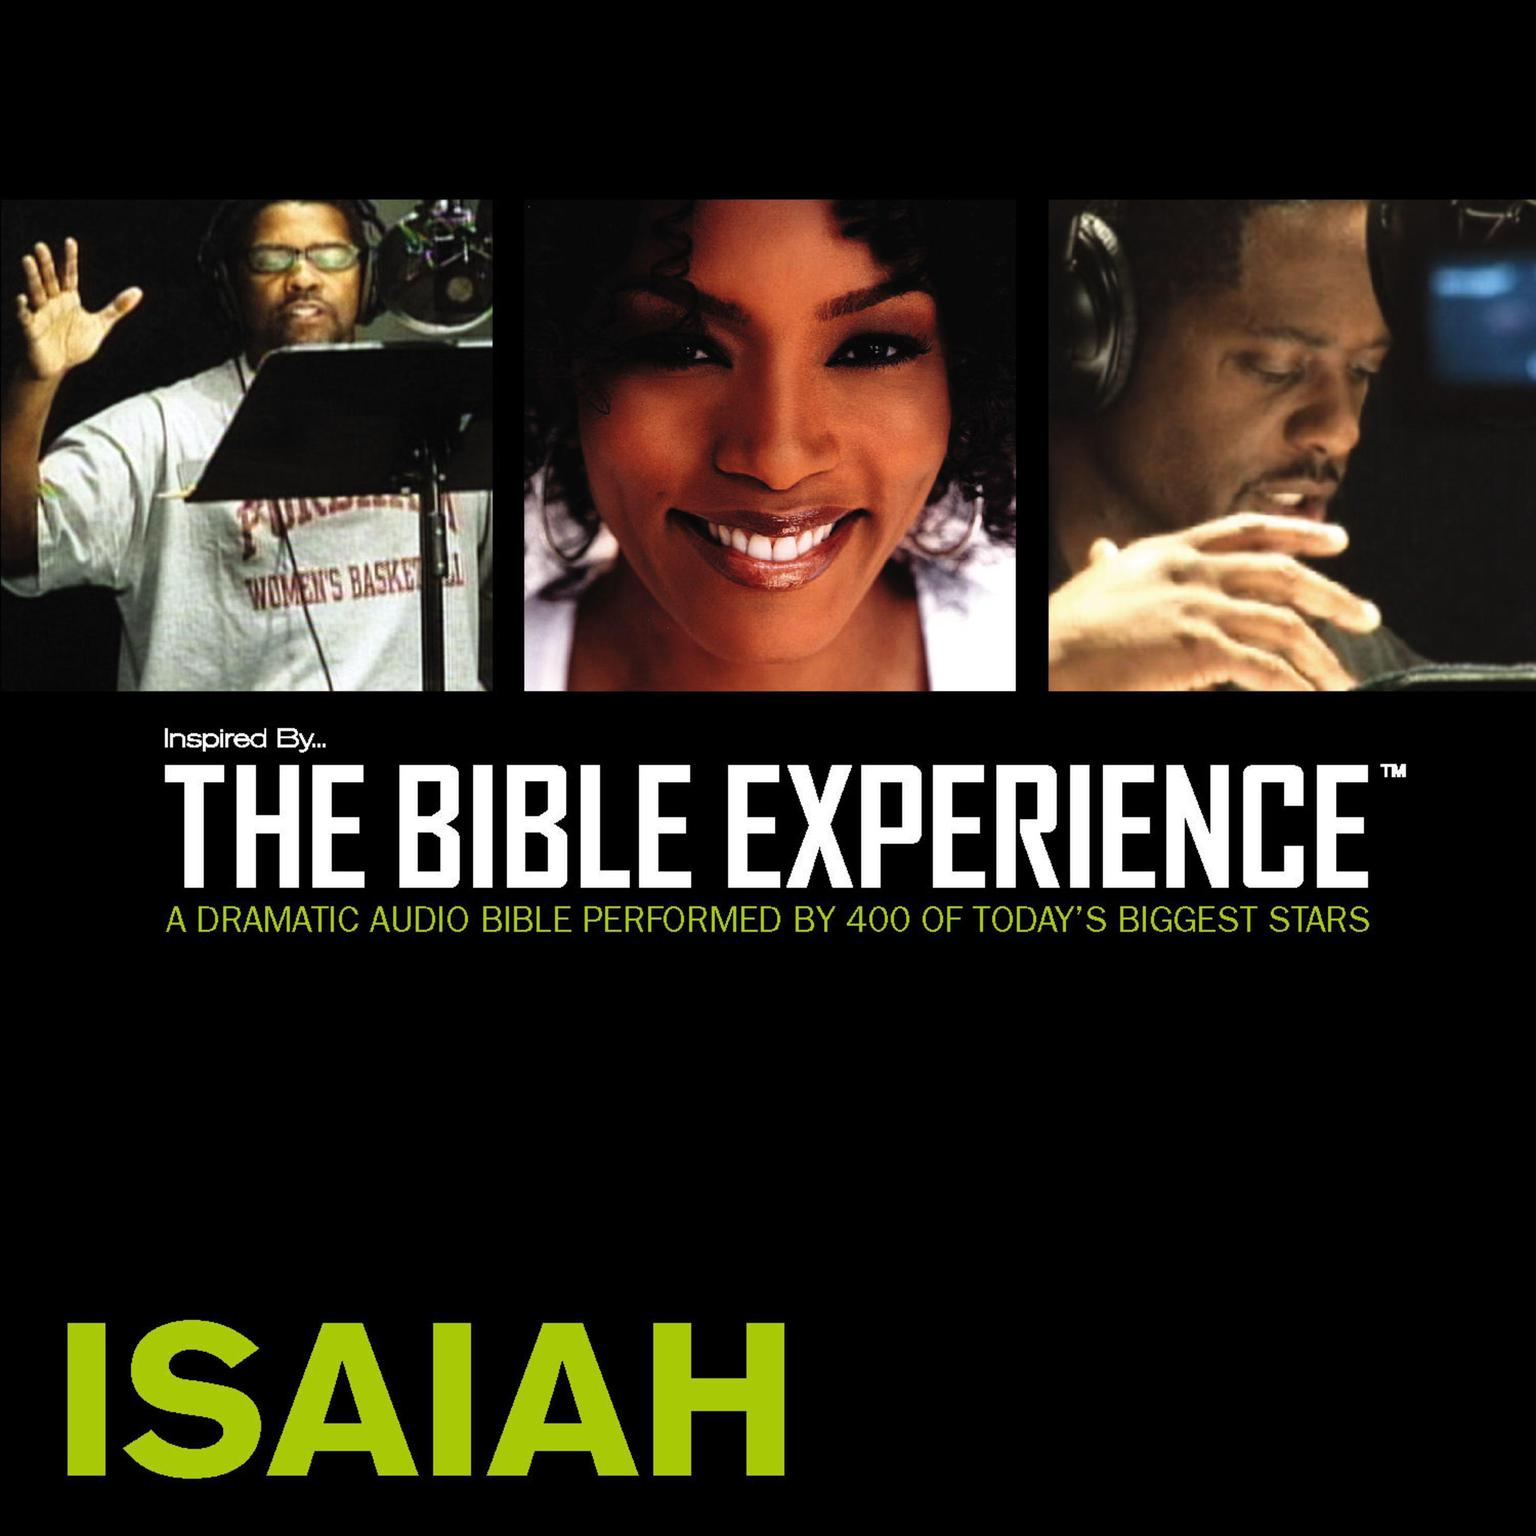 Printable Inspired By … The Bible Experience Audio Bible - Today's New International Version, TNIV: (21) Isaiah Audiobook Cover Art